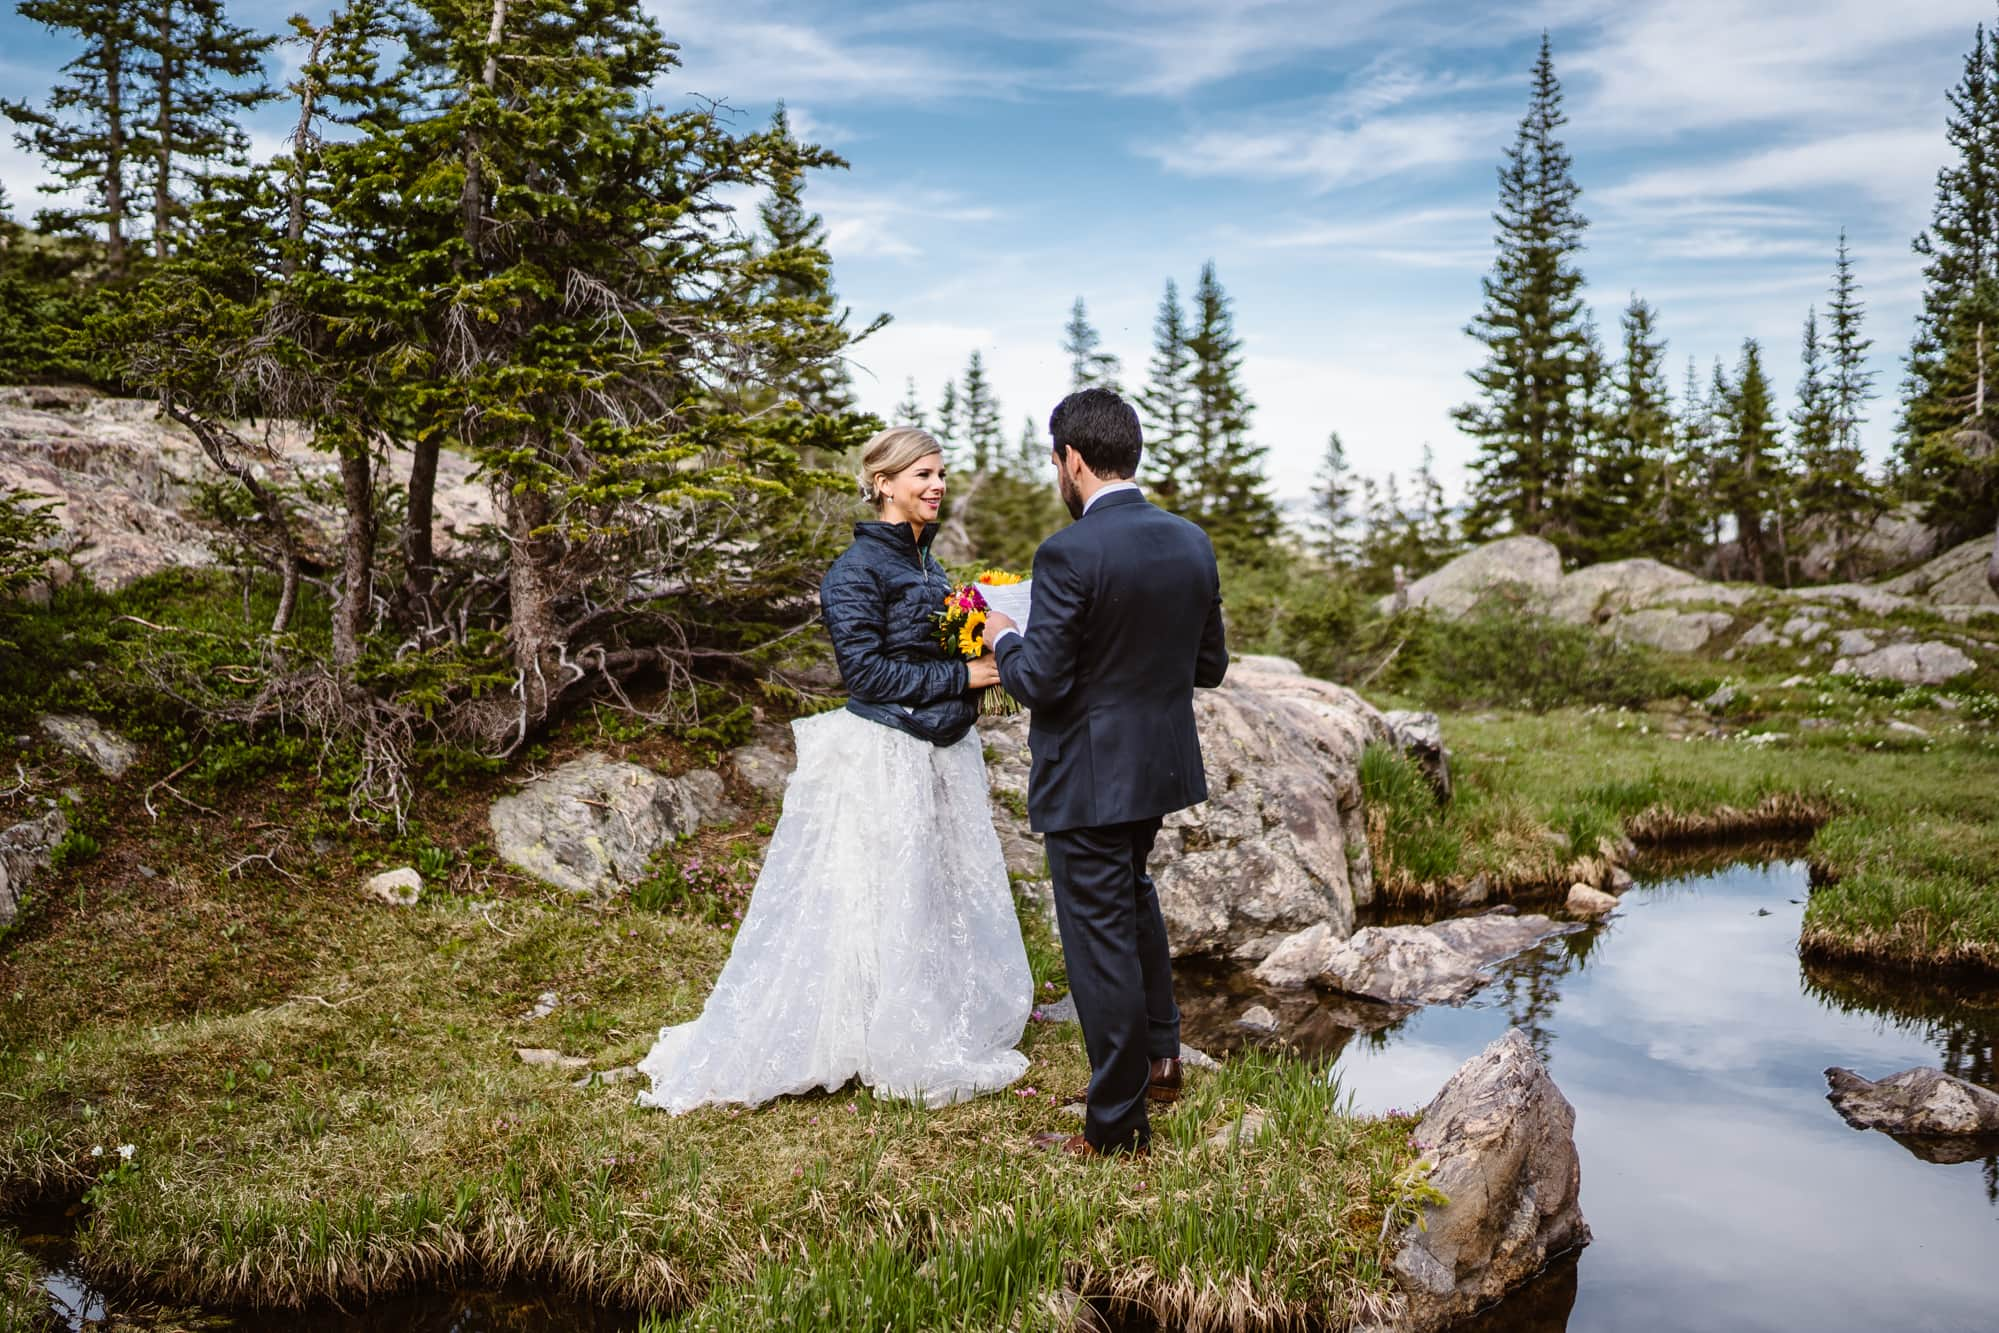 Bride and Groom Vow Ceremony Vail Colorado Elopement